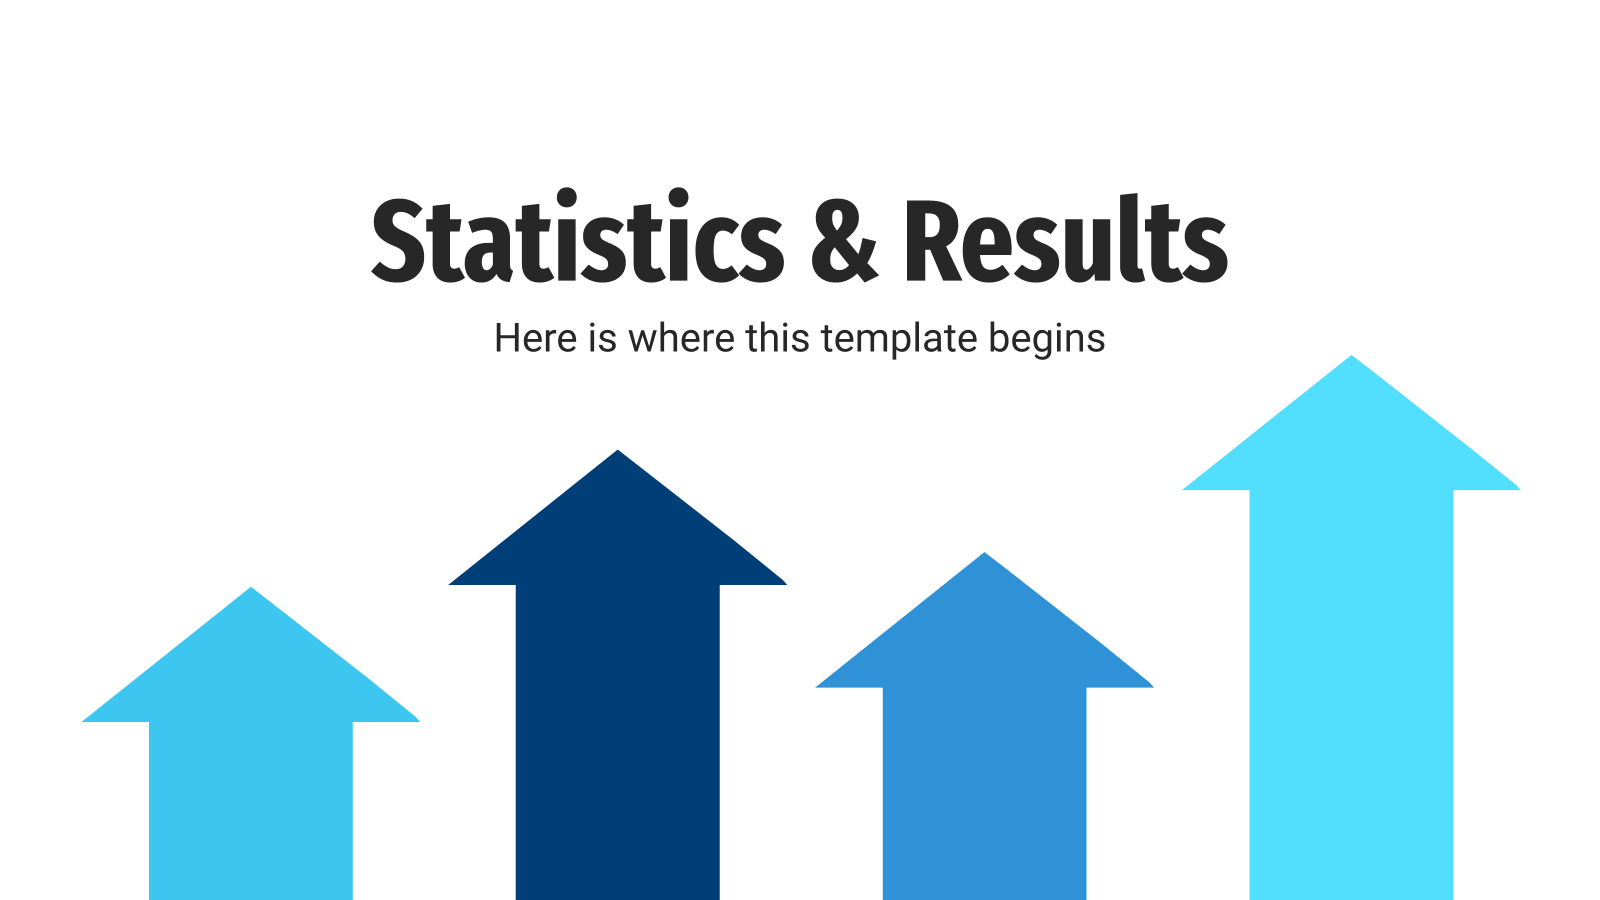 Statistics & Results presentation template